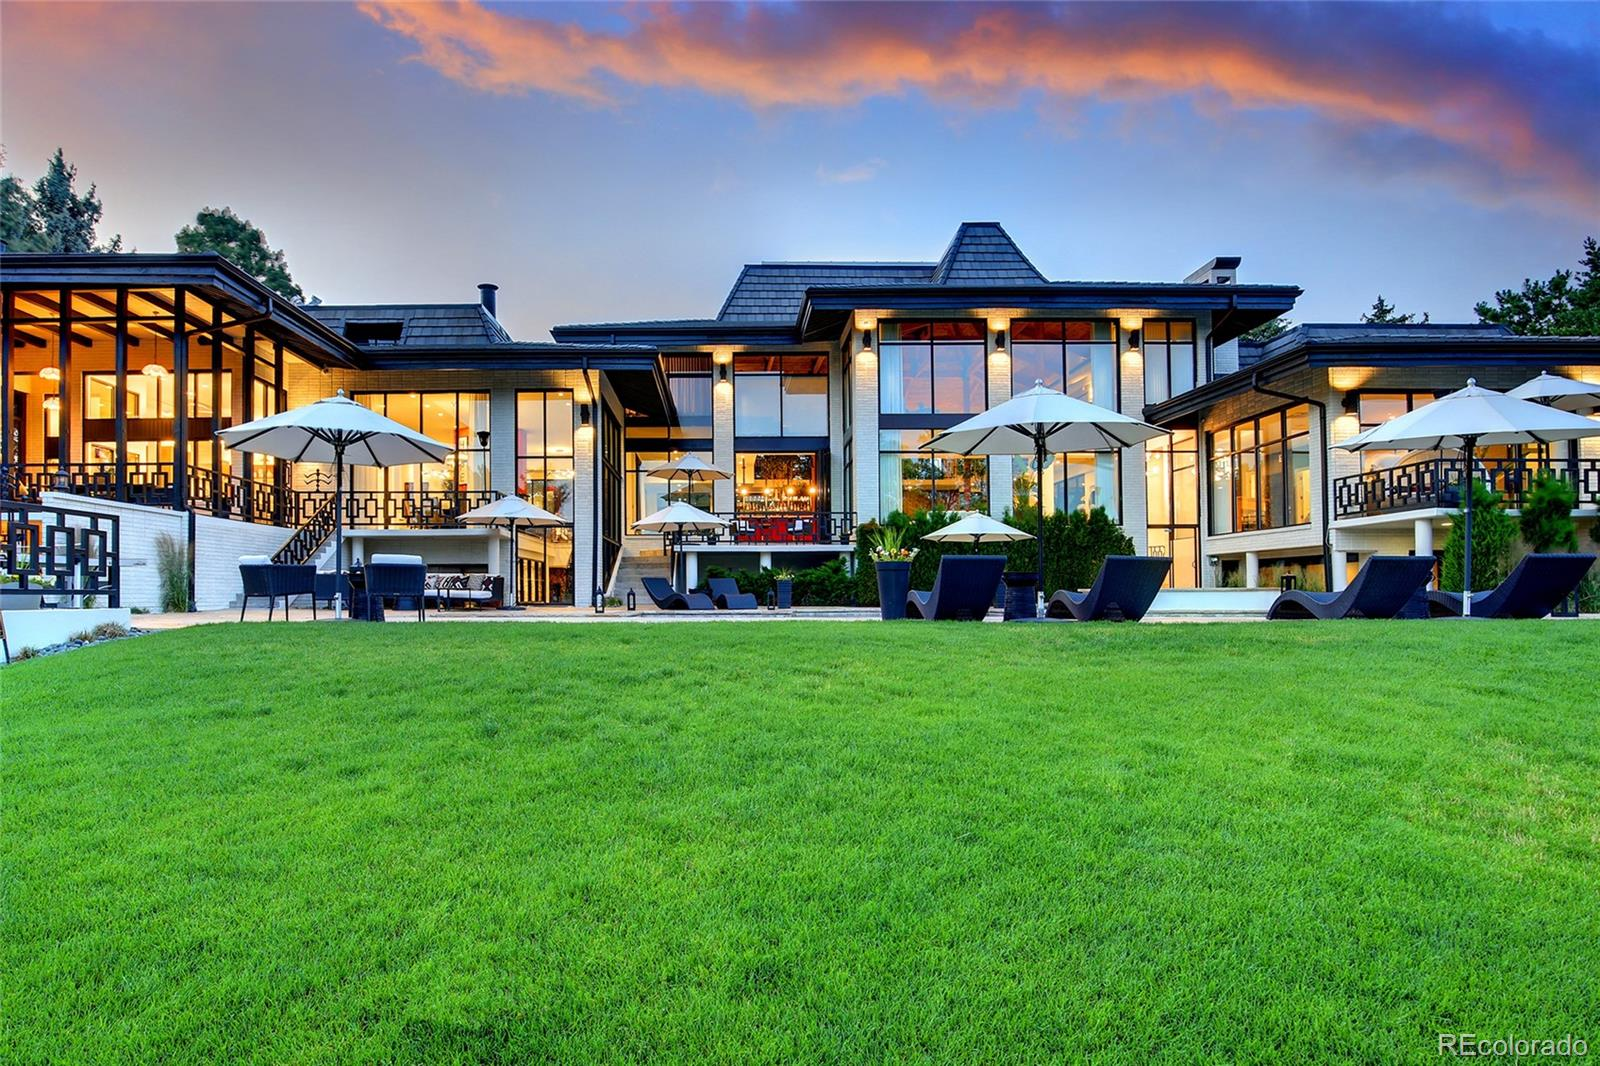 """The original owners called this home """"Utopia"""" and for good reason. Traditional Japanese architecture meets modern and contemporary beauty. Sensational views of the gorgeous pool overlooking the sixth fairway of Pinehurst Country Club and the Rockies beyond. The minute you arrive through the private gate you will be enchanted by the stunning double door entrance - leading to a loggia with indoor trees, floor to ceiling windows, spiral staircases, and numerous terraces overlooking the gorgeous one acre property. Dream entertaining space with open floor plan, custom foyer bar and cozy sitting and dining areas. Grand owners suite with sitting area, his and hers baths, massive cedar-lined closet and a private terrace to take in the view. Private gym with a sunken media room and spa area that rivals any hotel gym. Original lava rock lined two story wine cellar with an entertaining area perfect for poker night or wine tastings. Be sure to check out the secret wine cellar entrance. Take a moment to reflect in the upper level meditation room before practicing yoga on the outdoor patio. Separate caretakers apartment. This home has been meticulously updated with thought going into every improvement and design element. Truly a space that needs to be seen to be believed. Watch the video here: https://www.youtube.com/watch?v=yjWntI5no4s"""